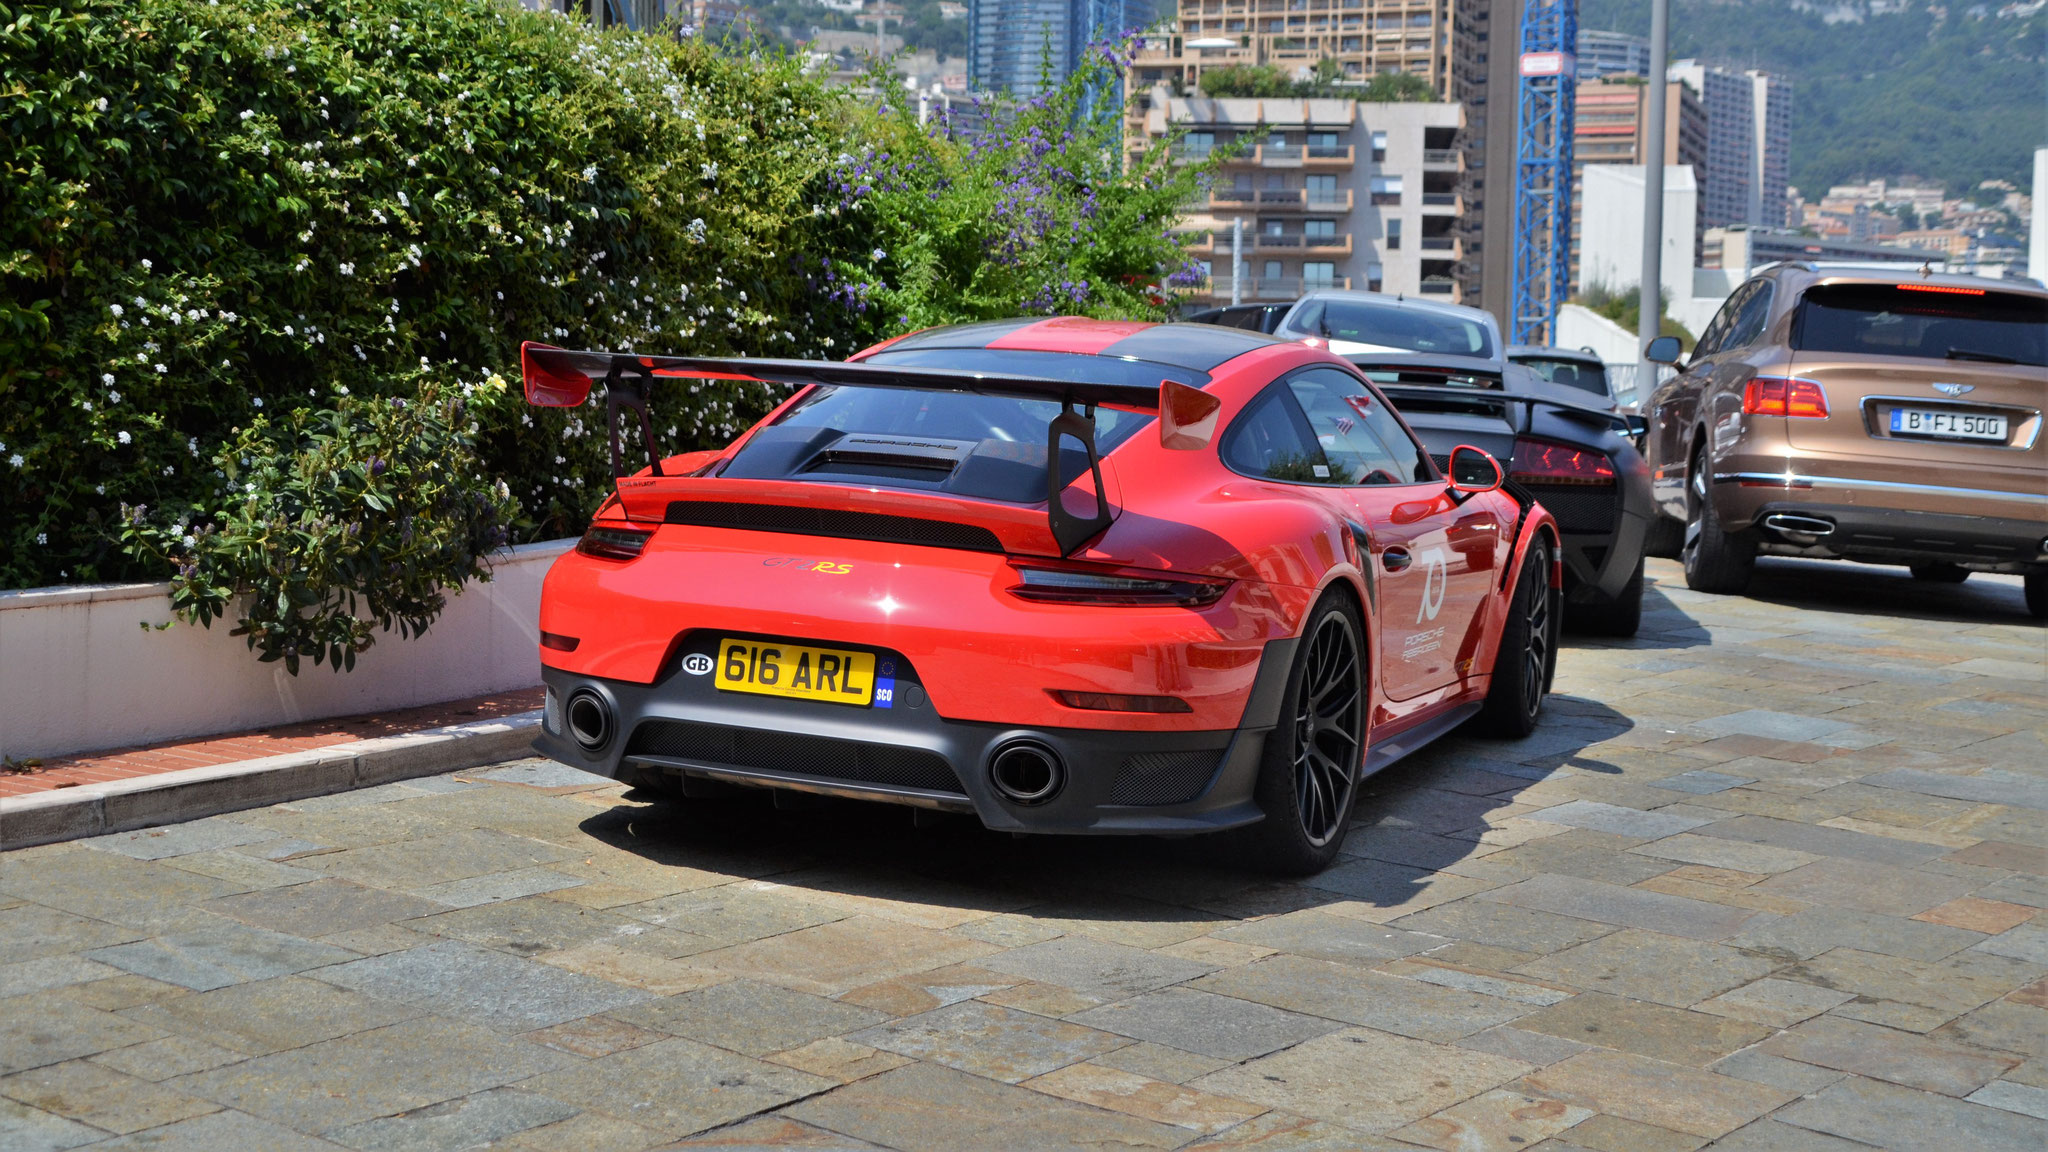 Porsche 911 GT2 RS - 616-ARL (GB)